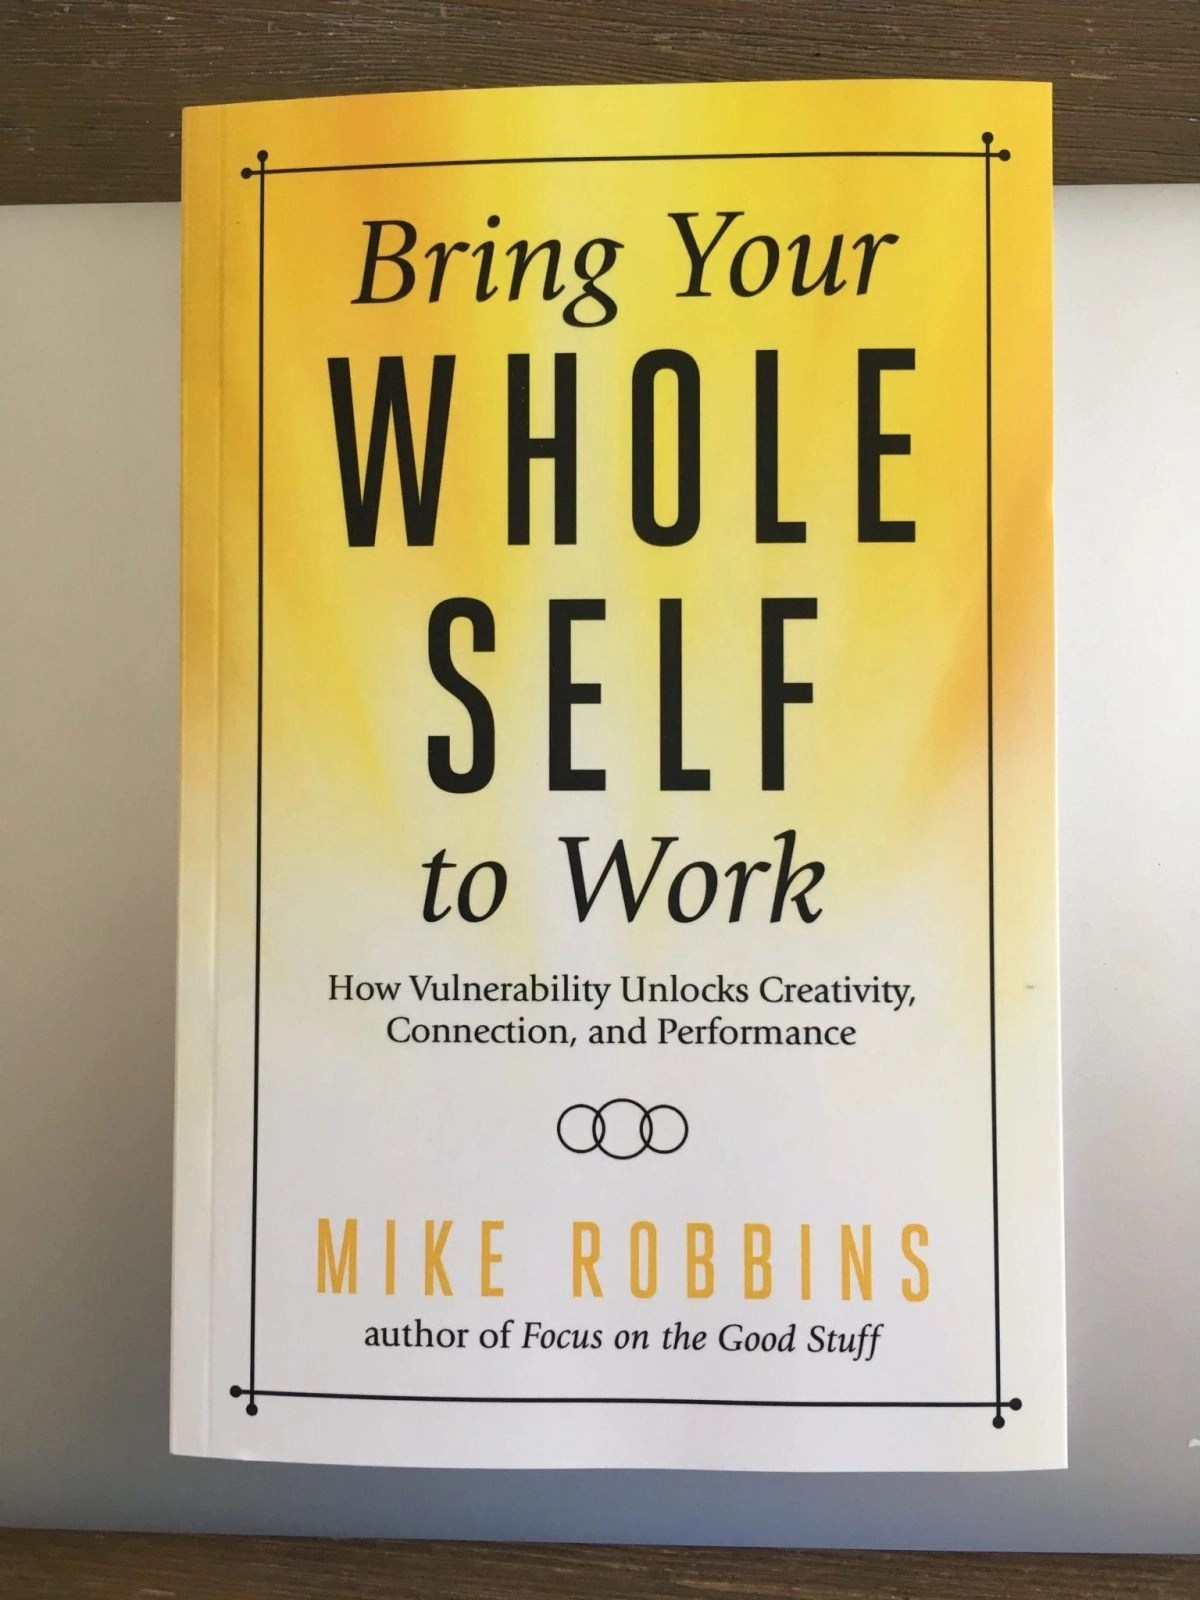 Mike Robbins Book Bring Your Whole Self to Work